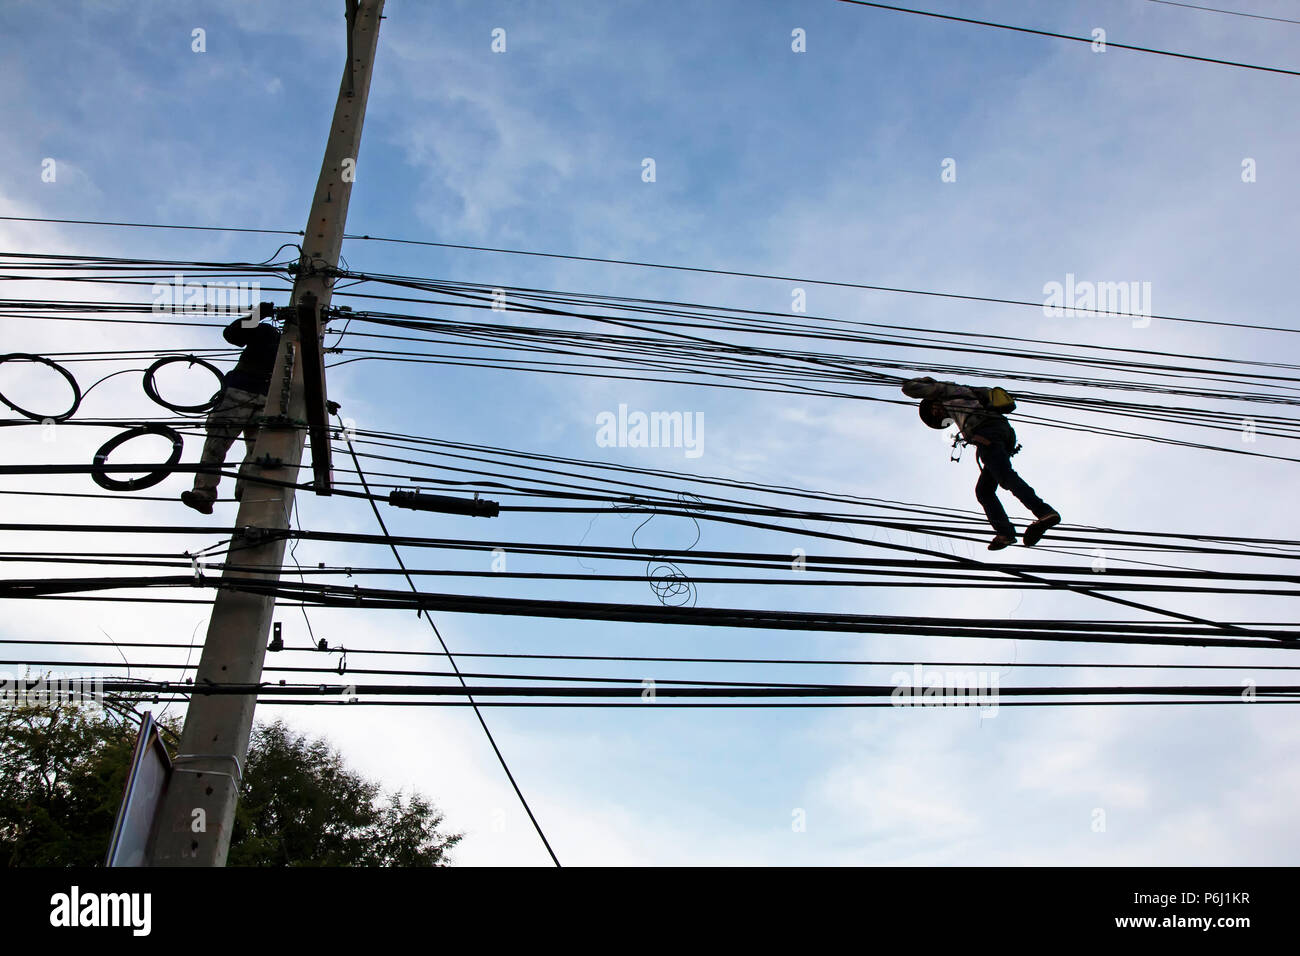 Live Wire Danger Stock Photos & Live Wire Danger Stock Images - Alamy